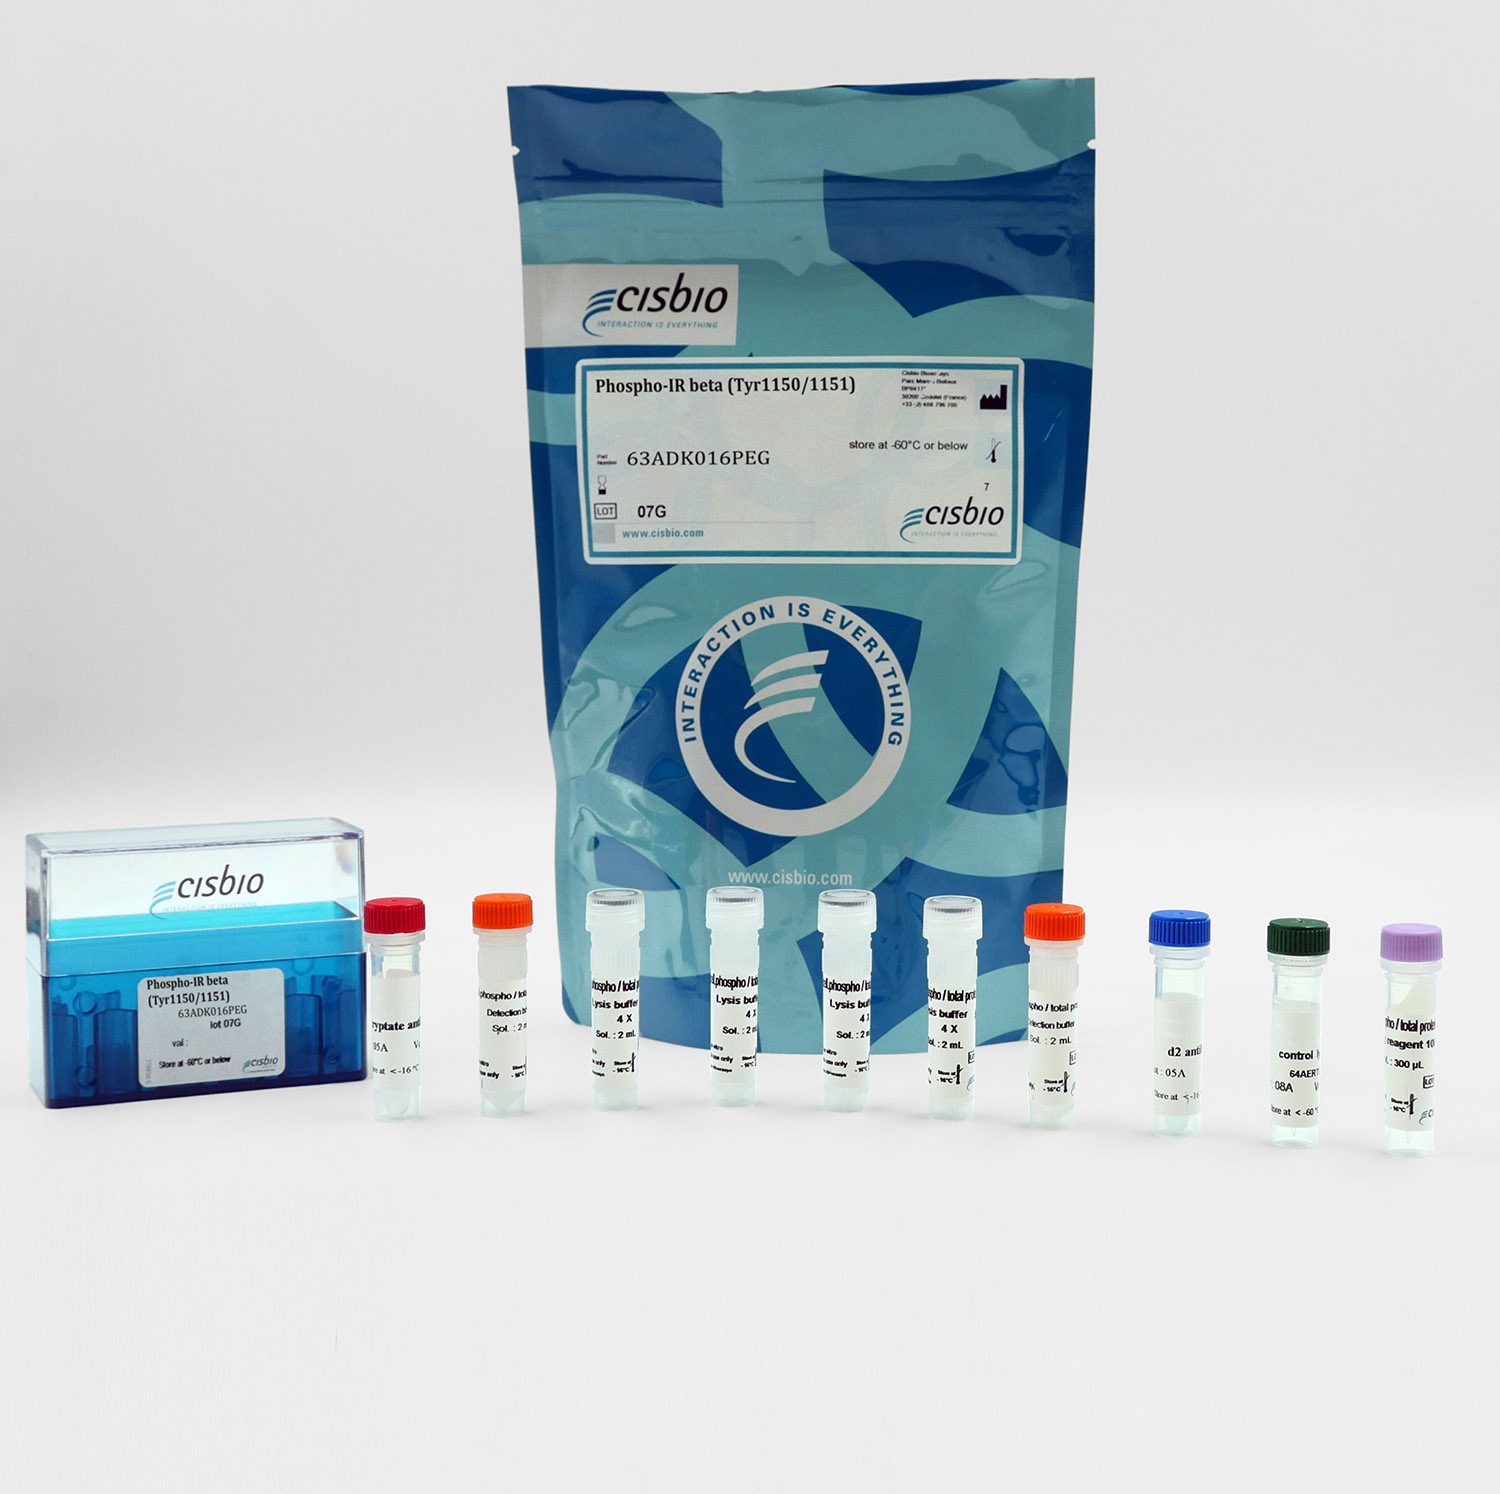 Phospho-Insulin Receptor-beta (Tyr1150/1151) cellular kit